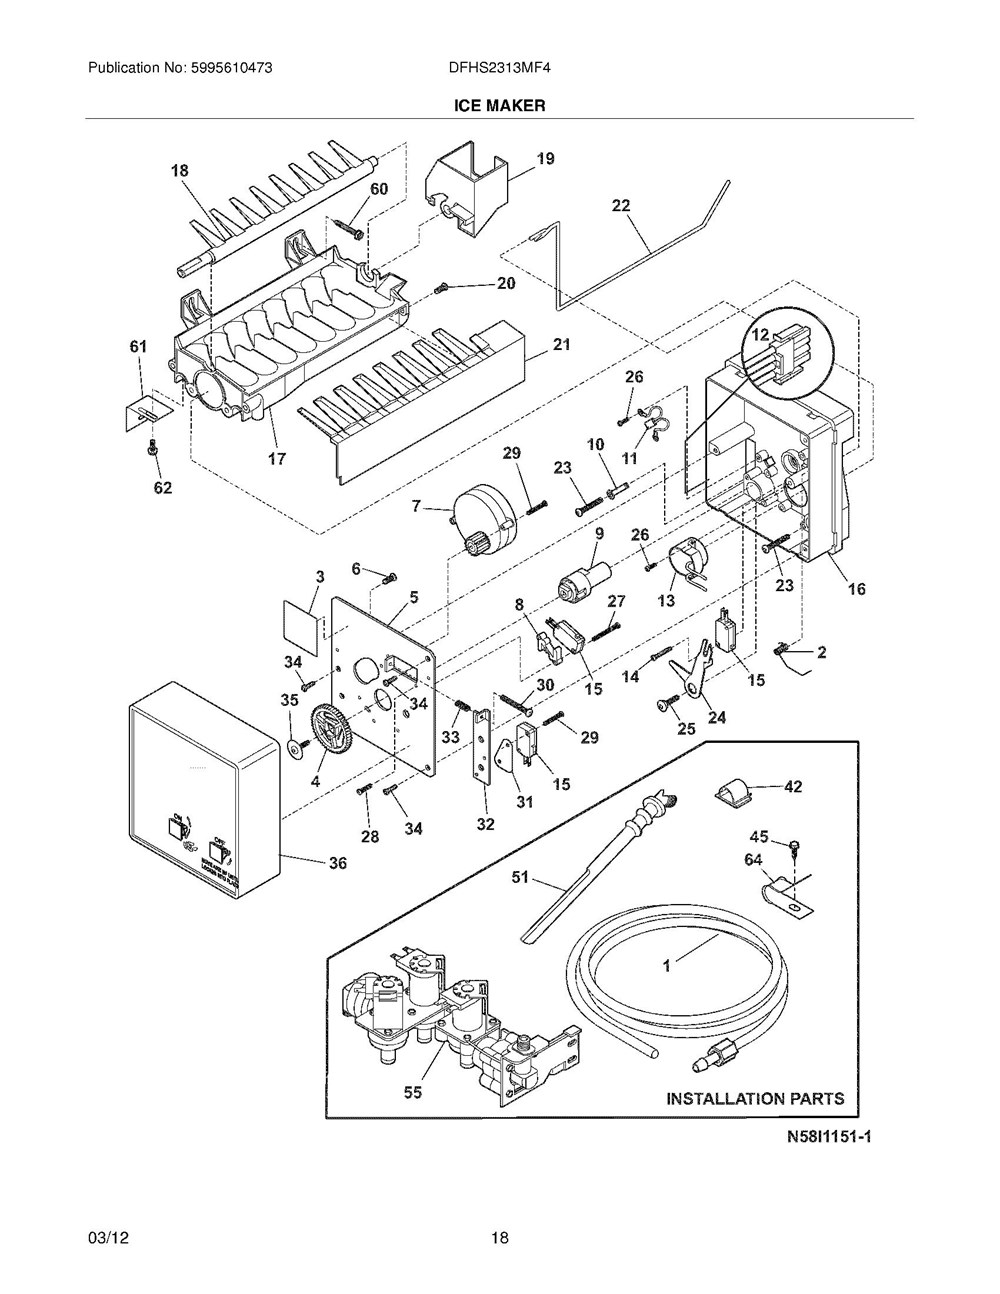 Dfhs2313mf4 Frigidaire Company Ice Maker Wiring Diagram